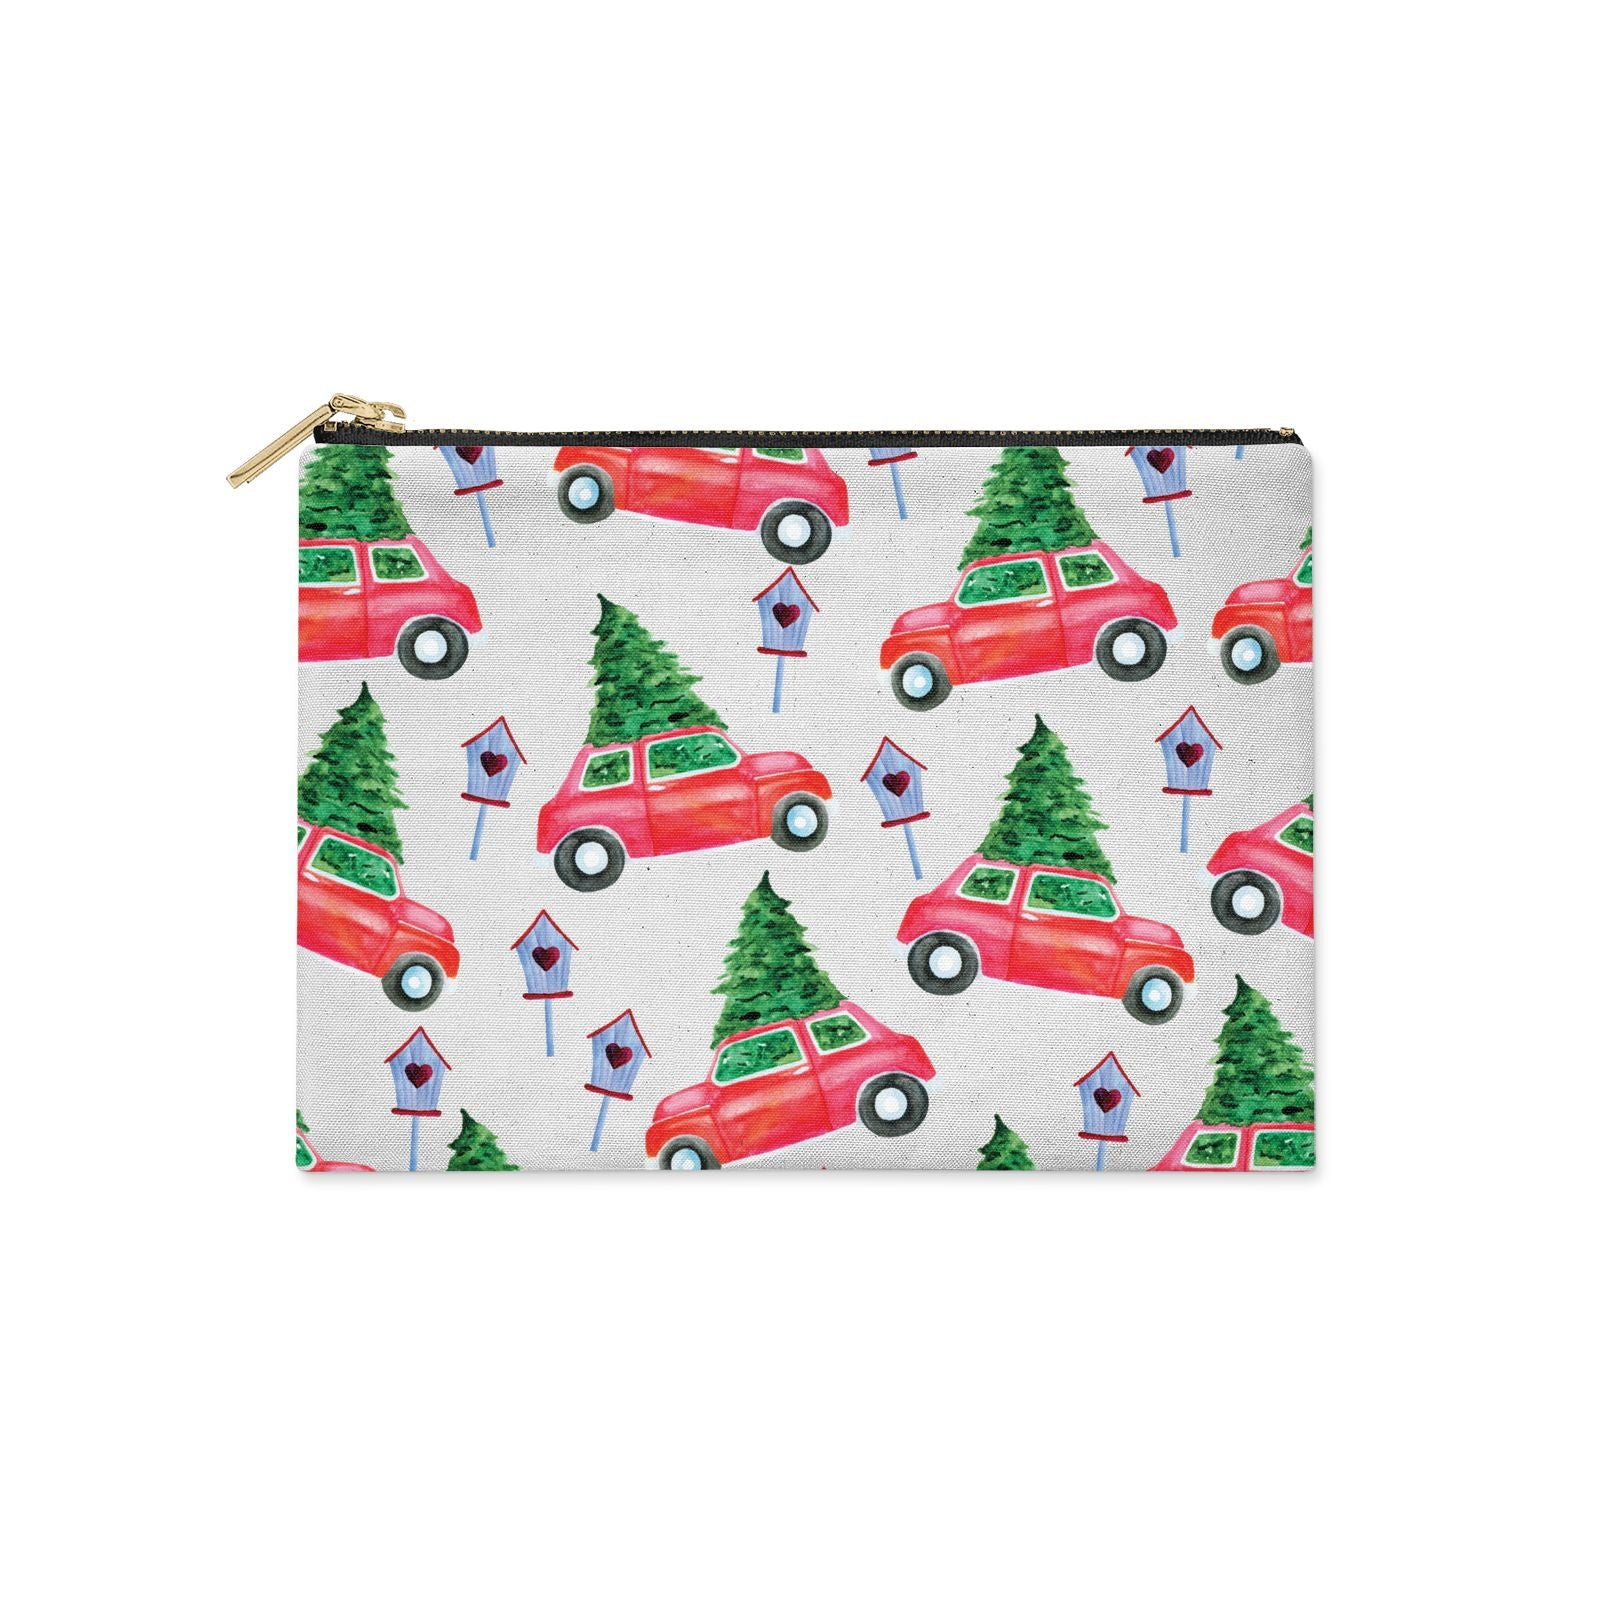 Driving home for Christmas Clutch Bag Zipper Pouch